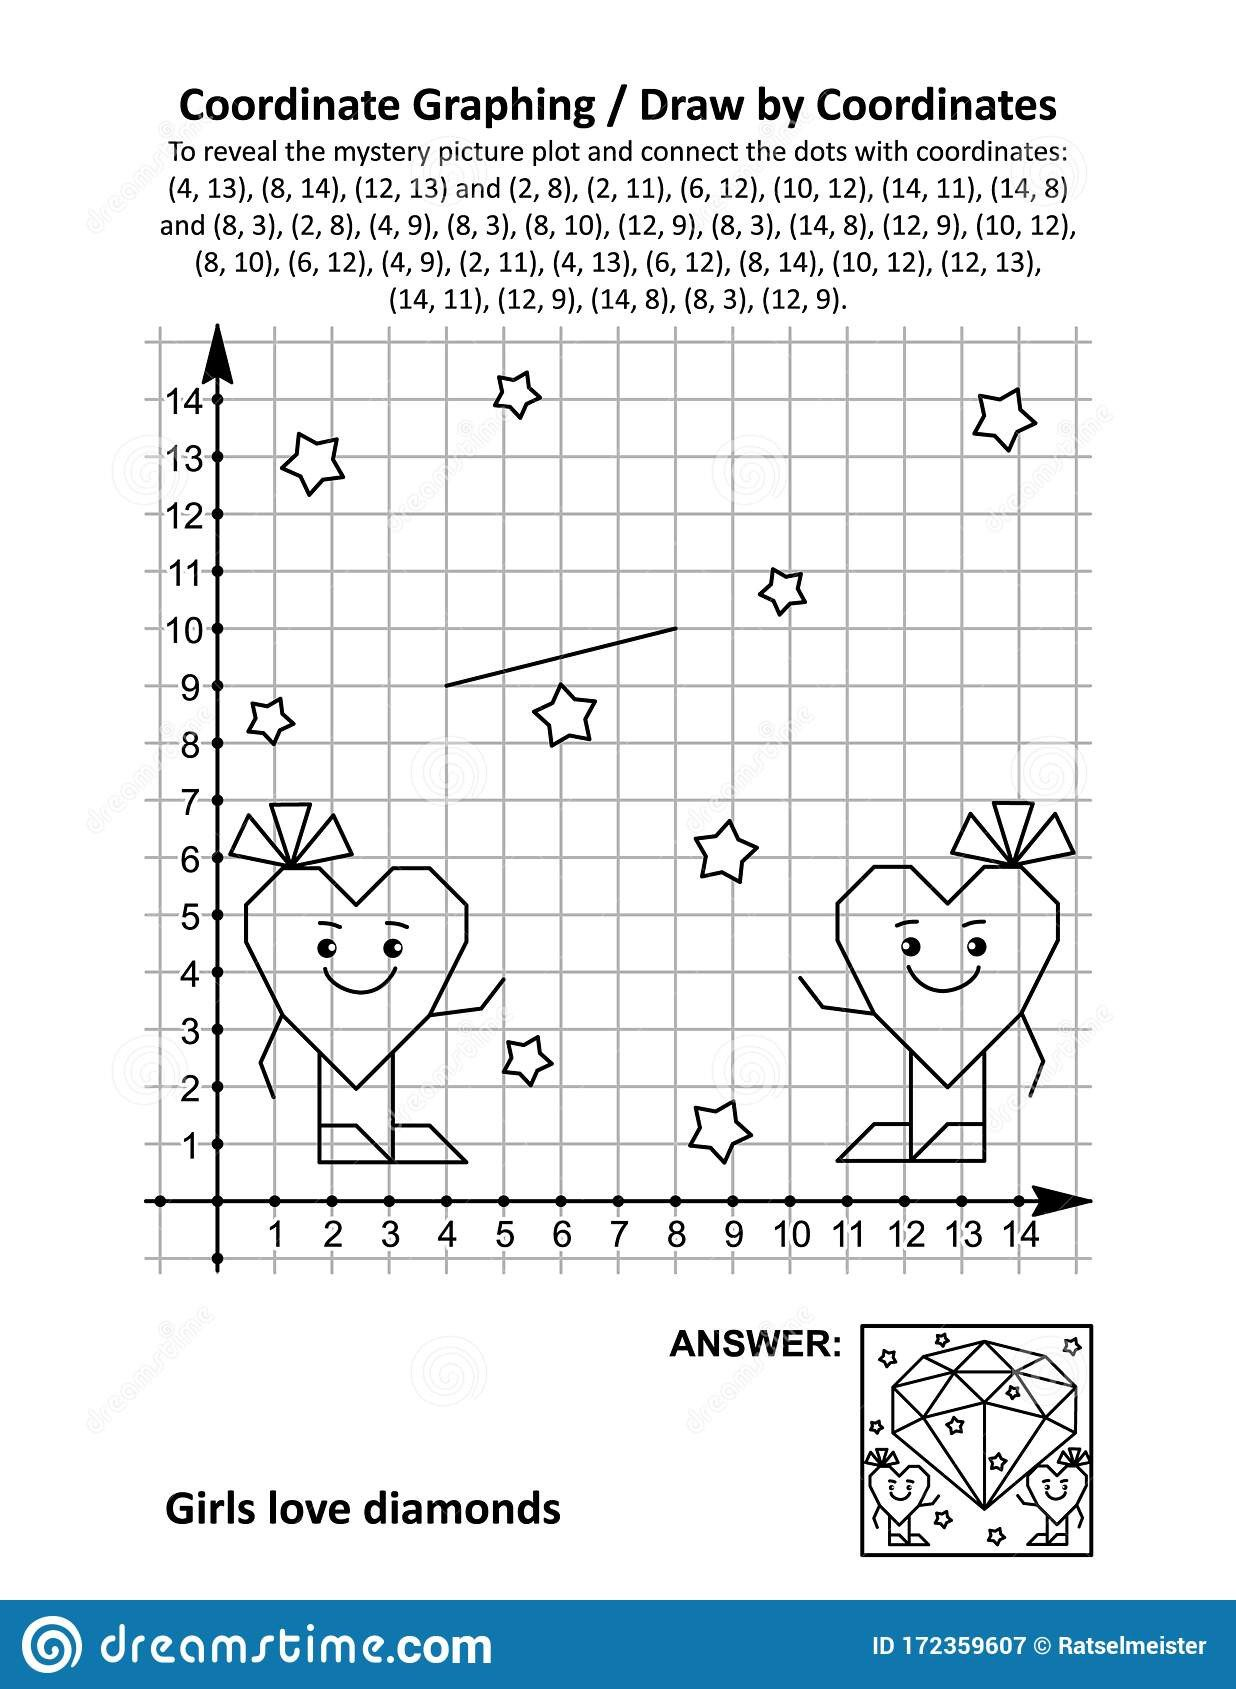 coordinate graphing draw coordinates math worksheet valentine s day mystery picture st girls love diamonds to reveal